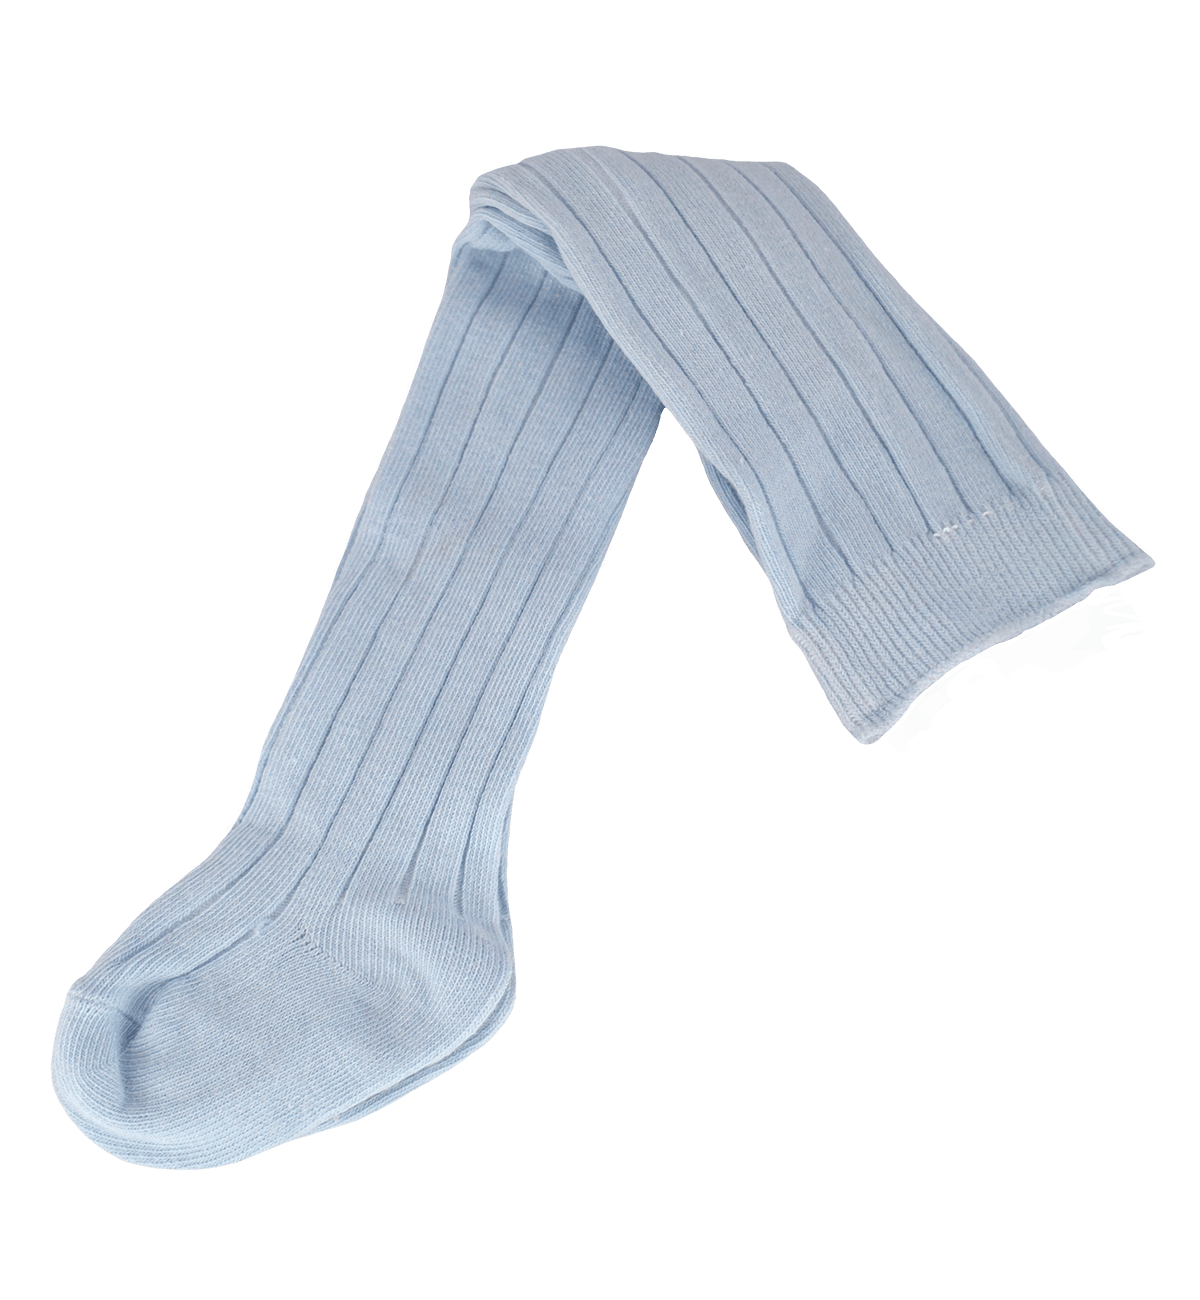 Spanish baby clothes | baby Tights | Baby blue ribbed knit tights |babymaC